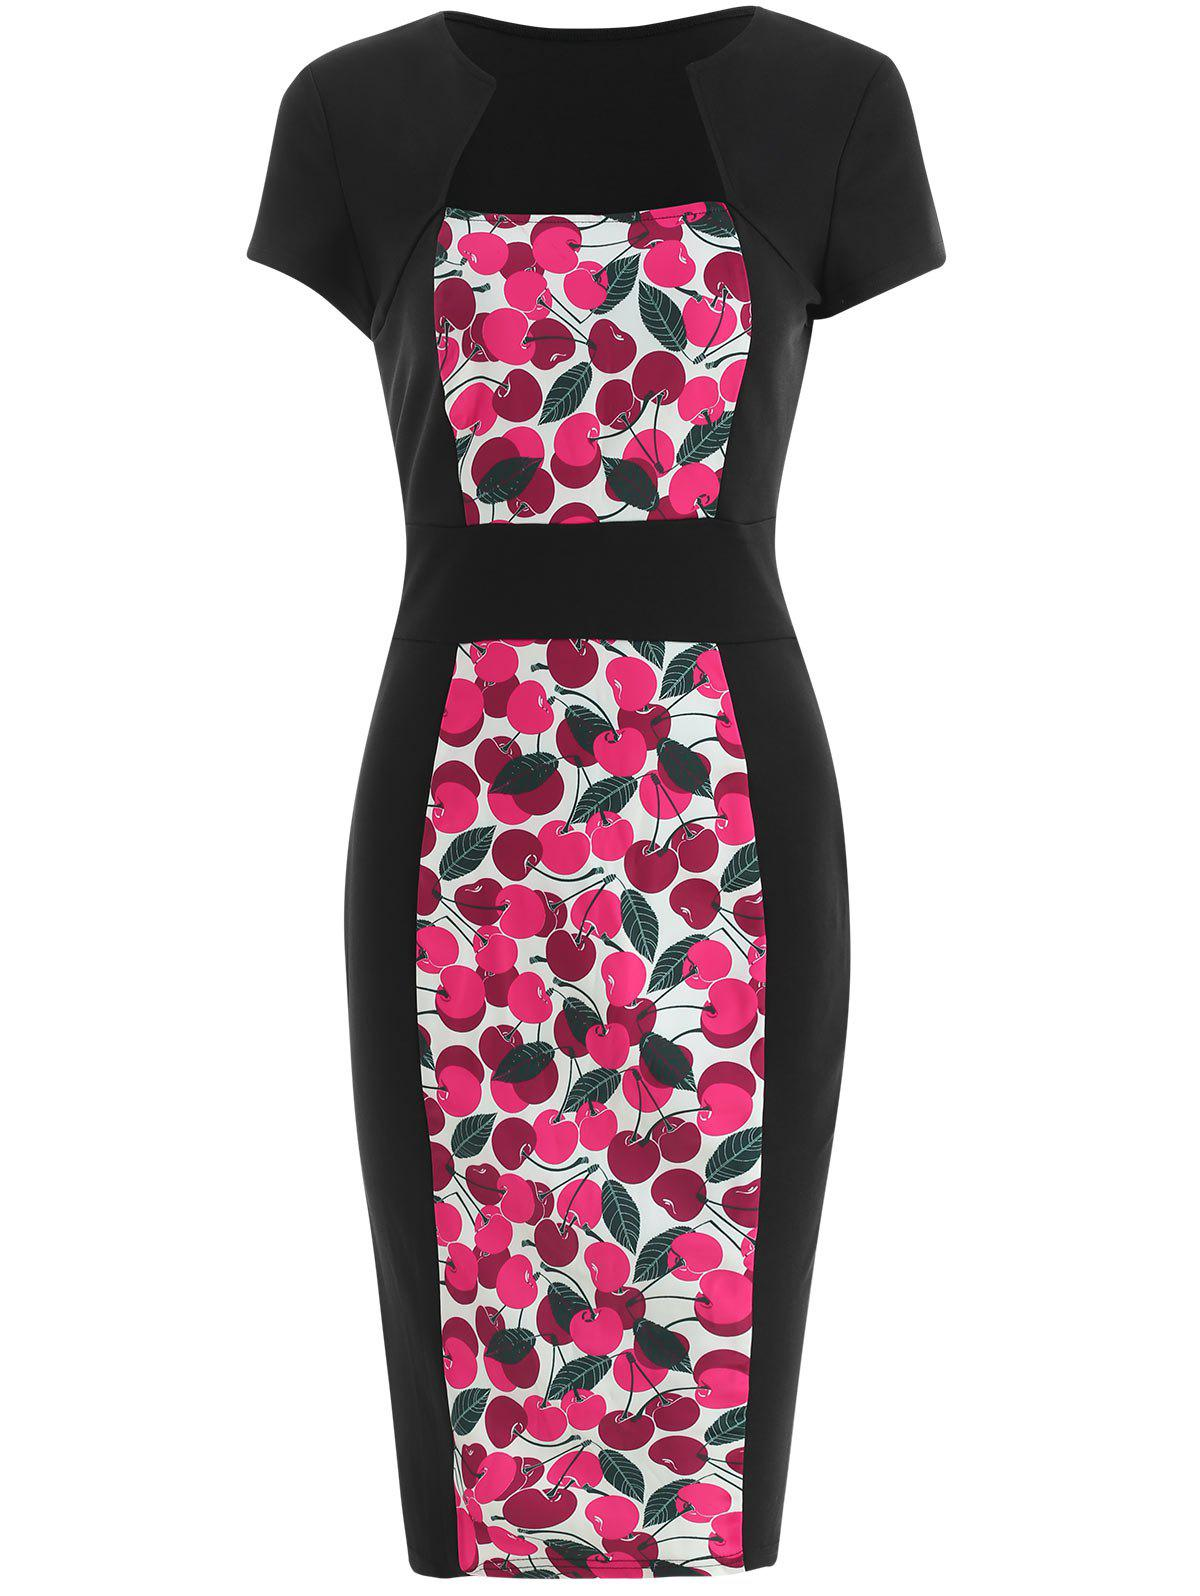 High Waist Slim Cherry Print Dress - multicolor 2XL